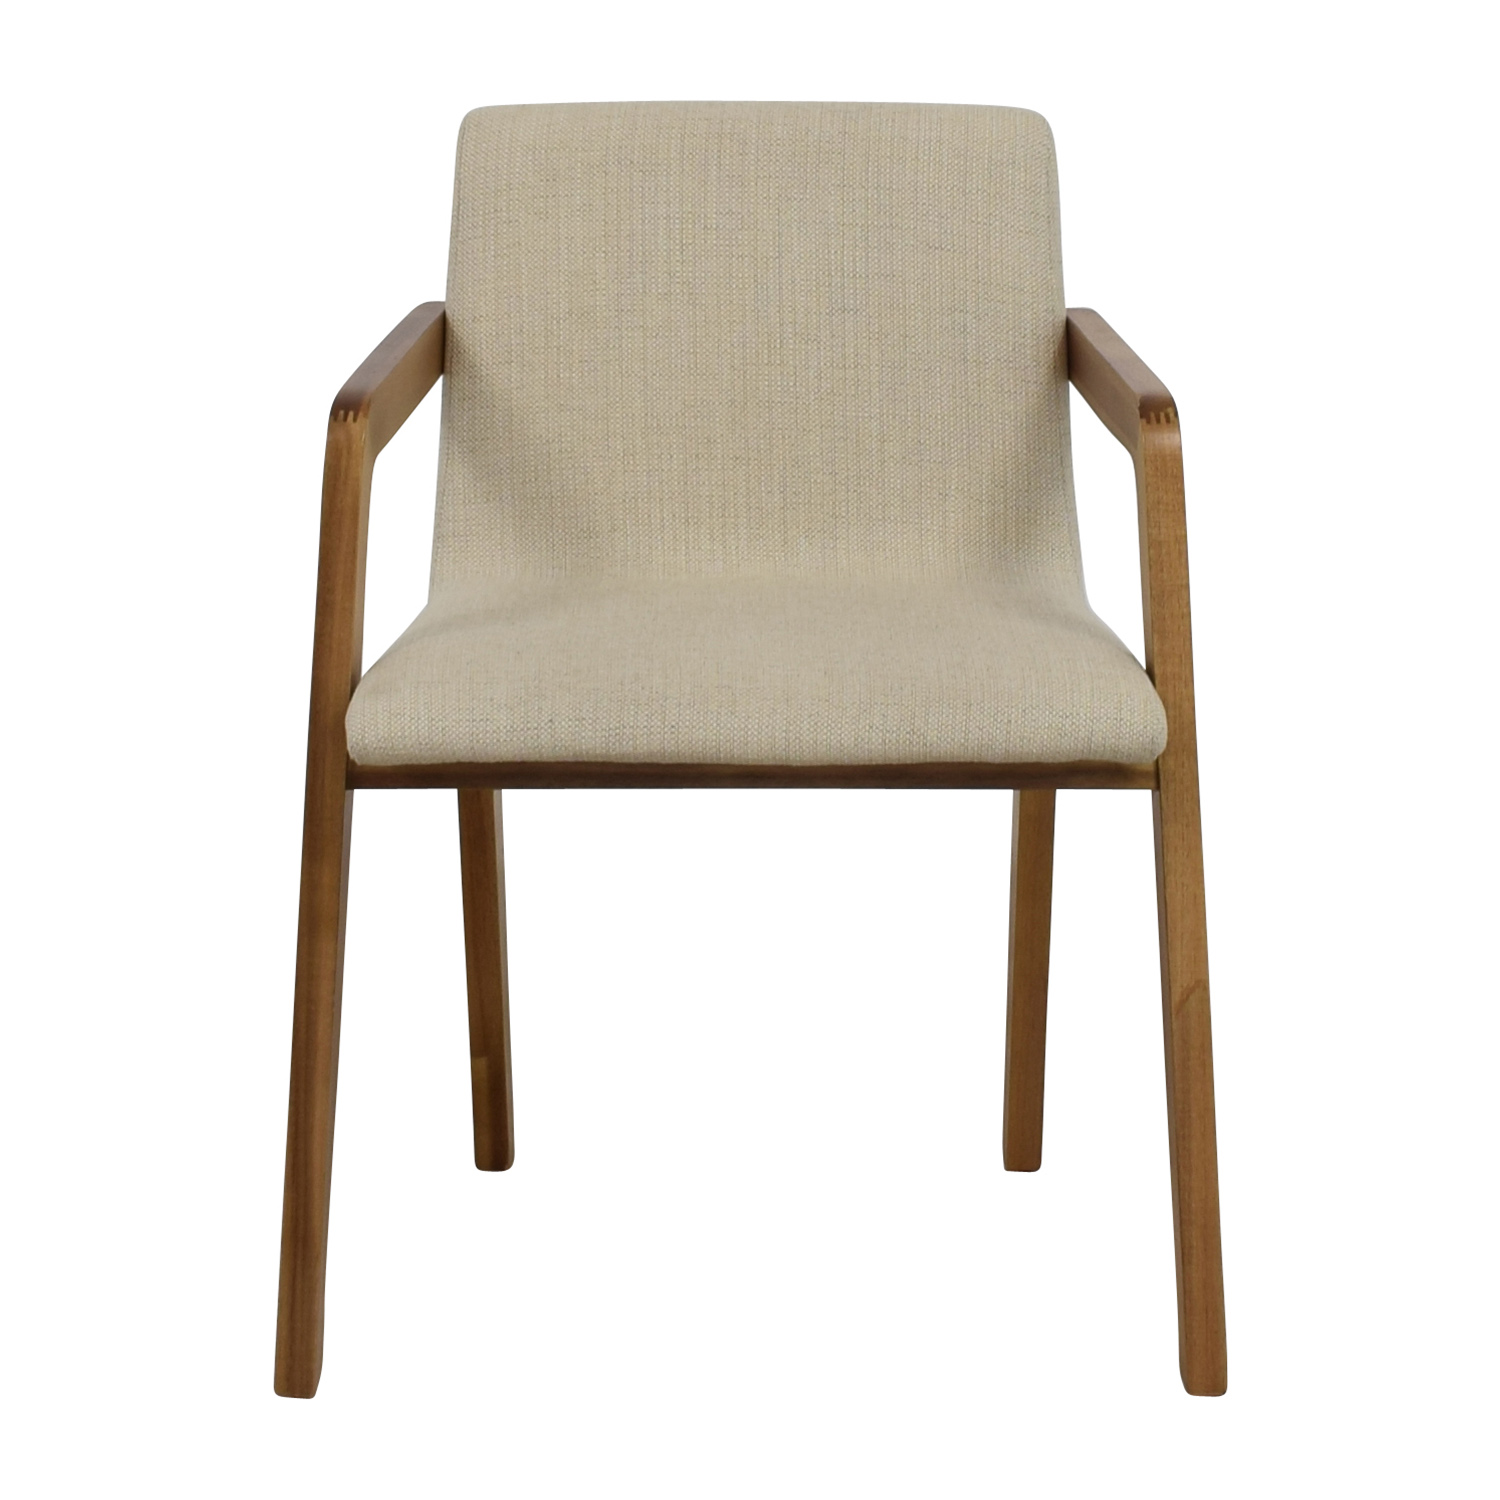 Enjoyable 58 Off Cb2 Cb2 Natural Mid Century Accent Chair Chairs Uwap Interior Chair Design Uwaporg